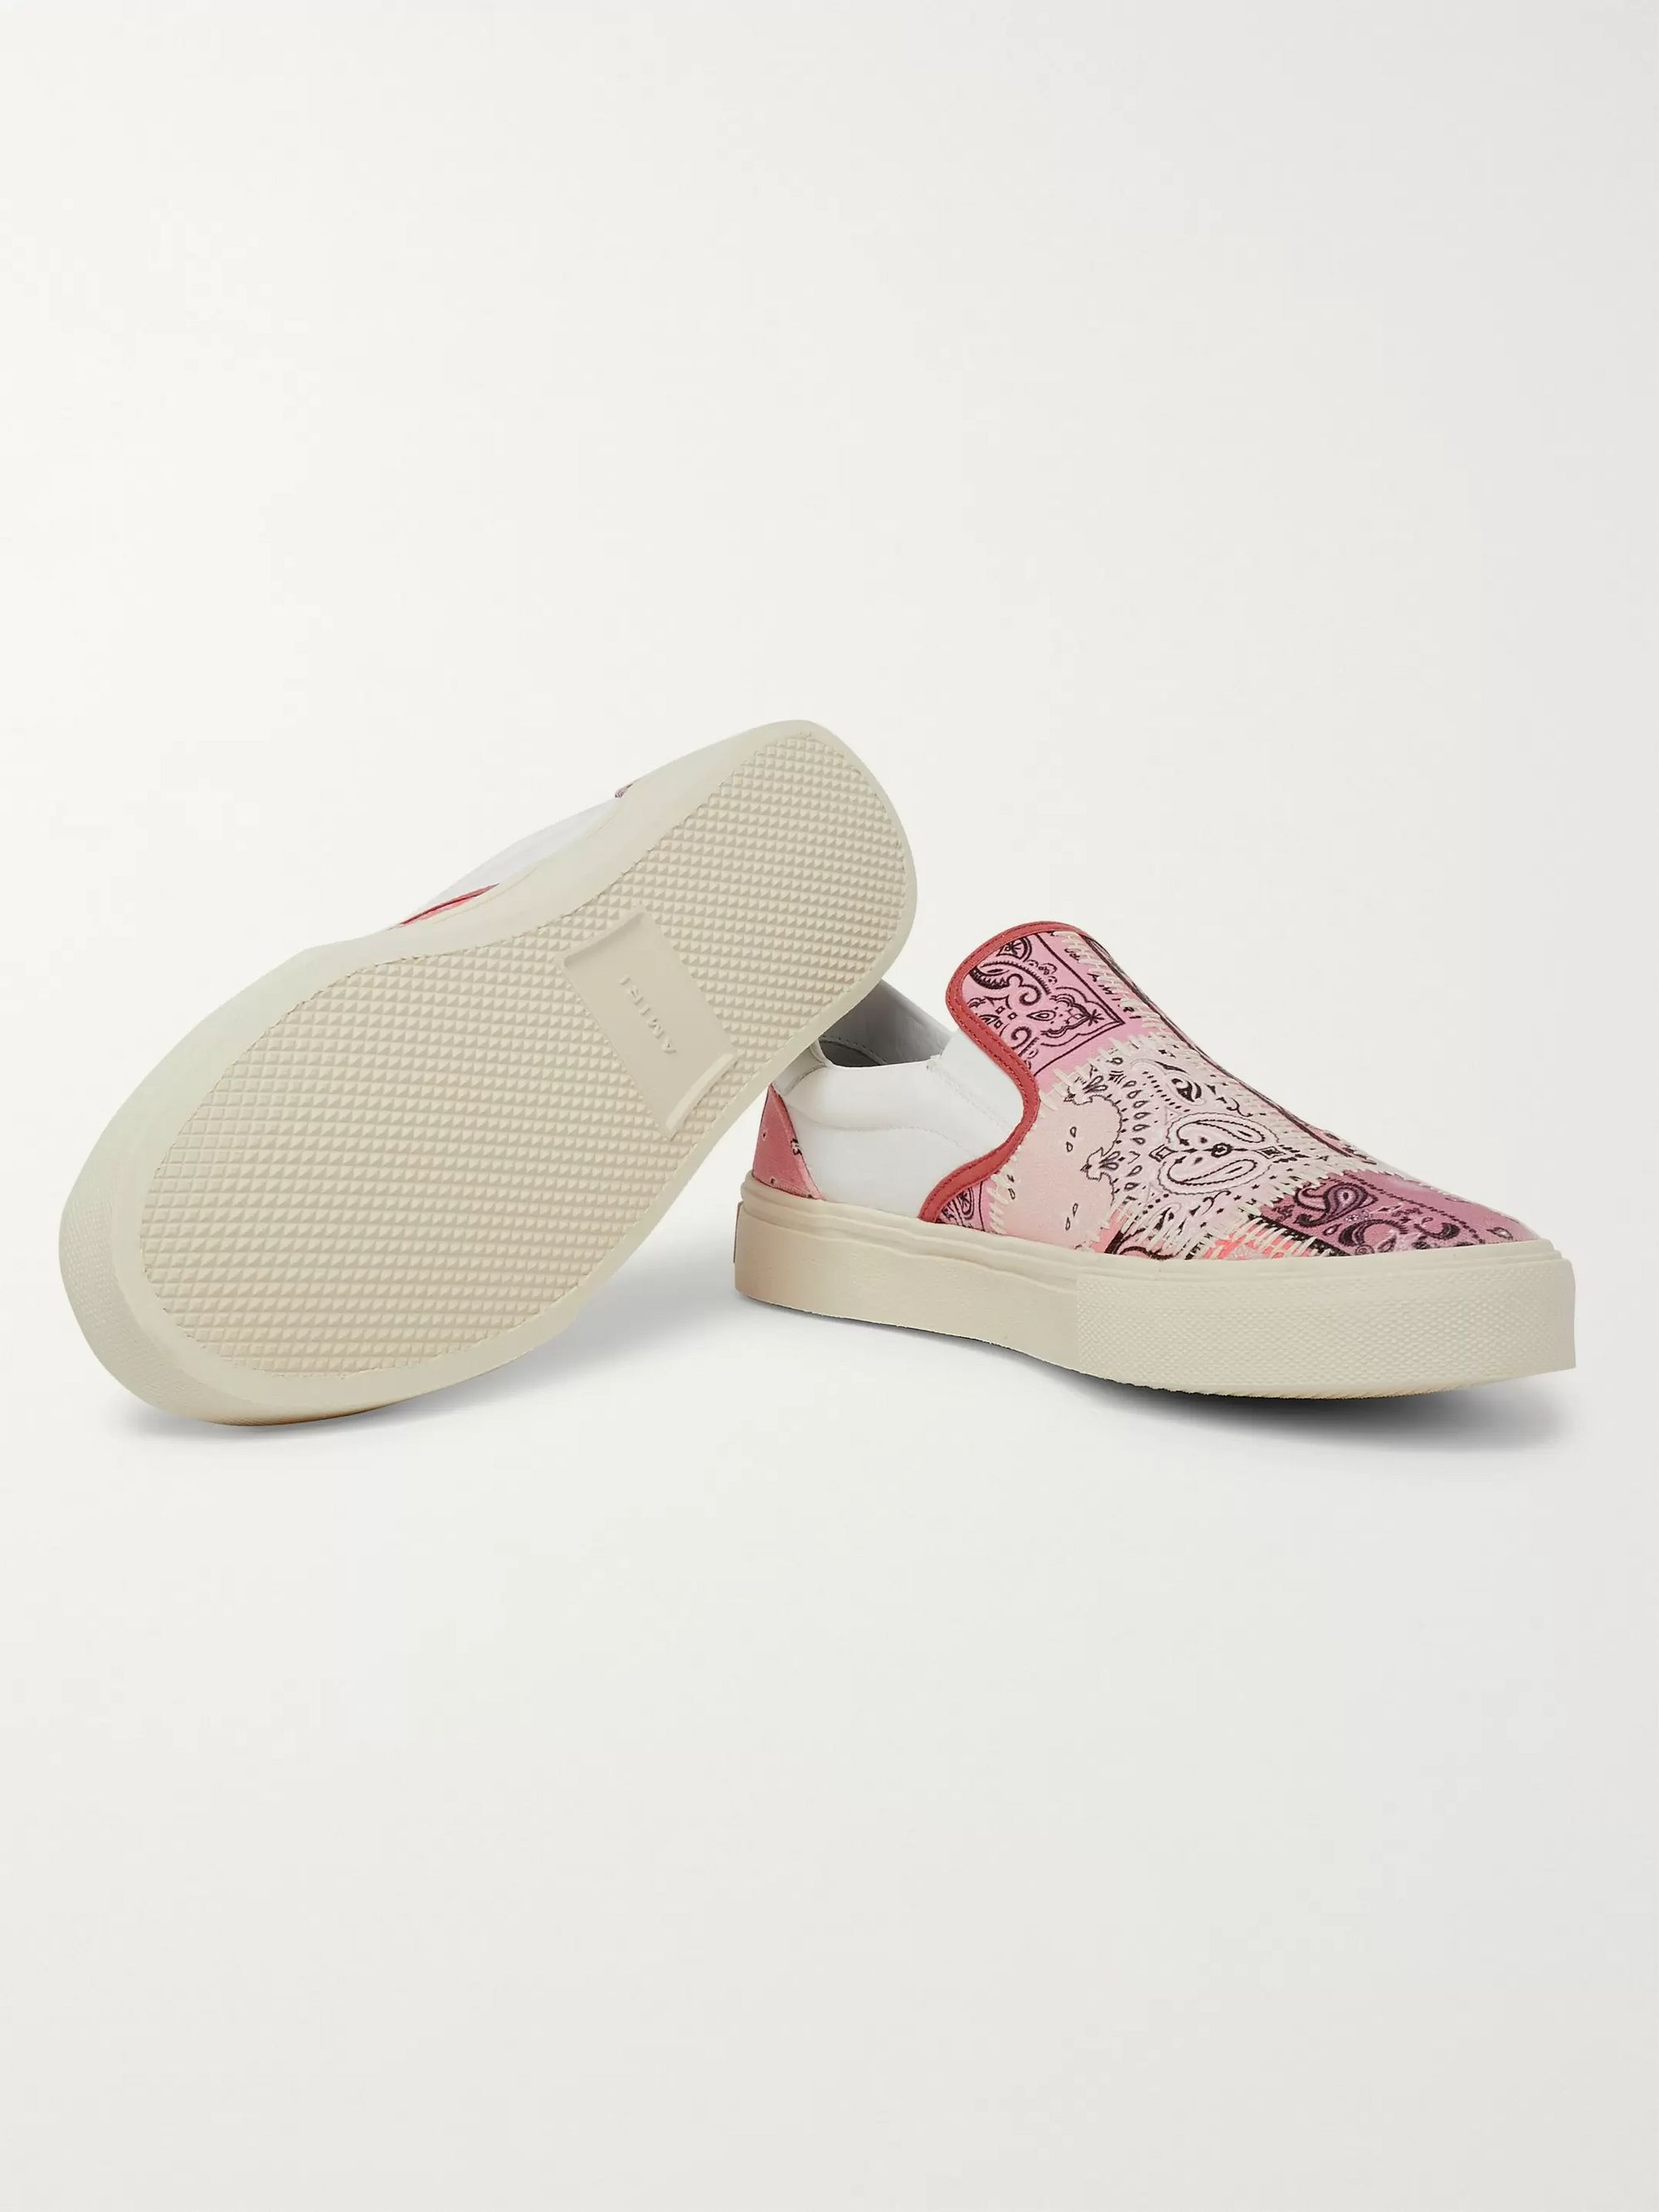 AMIRI Leather-Trimmed Bandana-Print Canvas Slip-On Sneakers